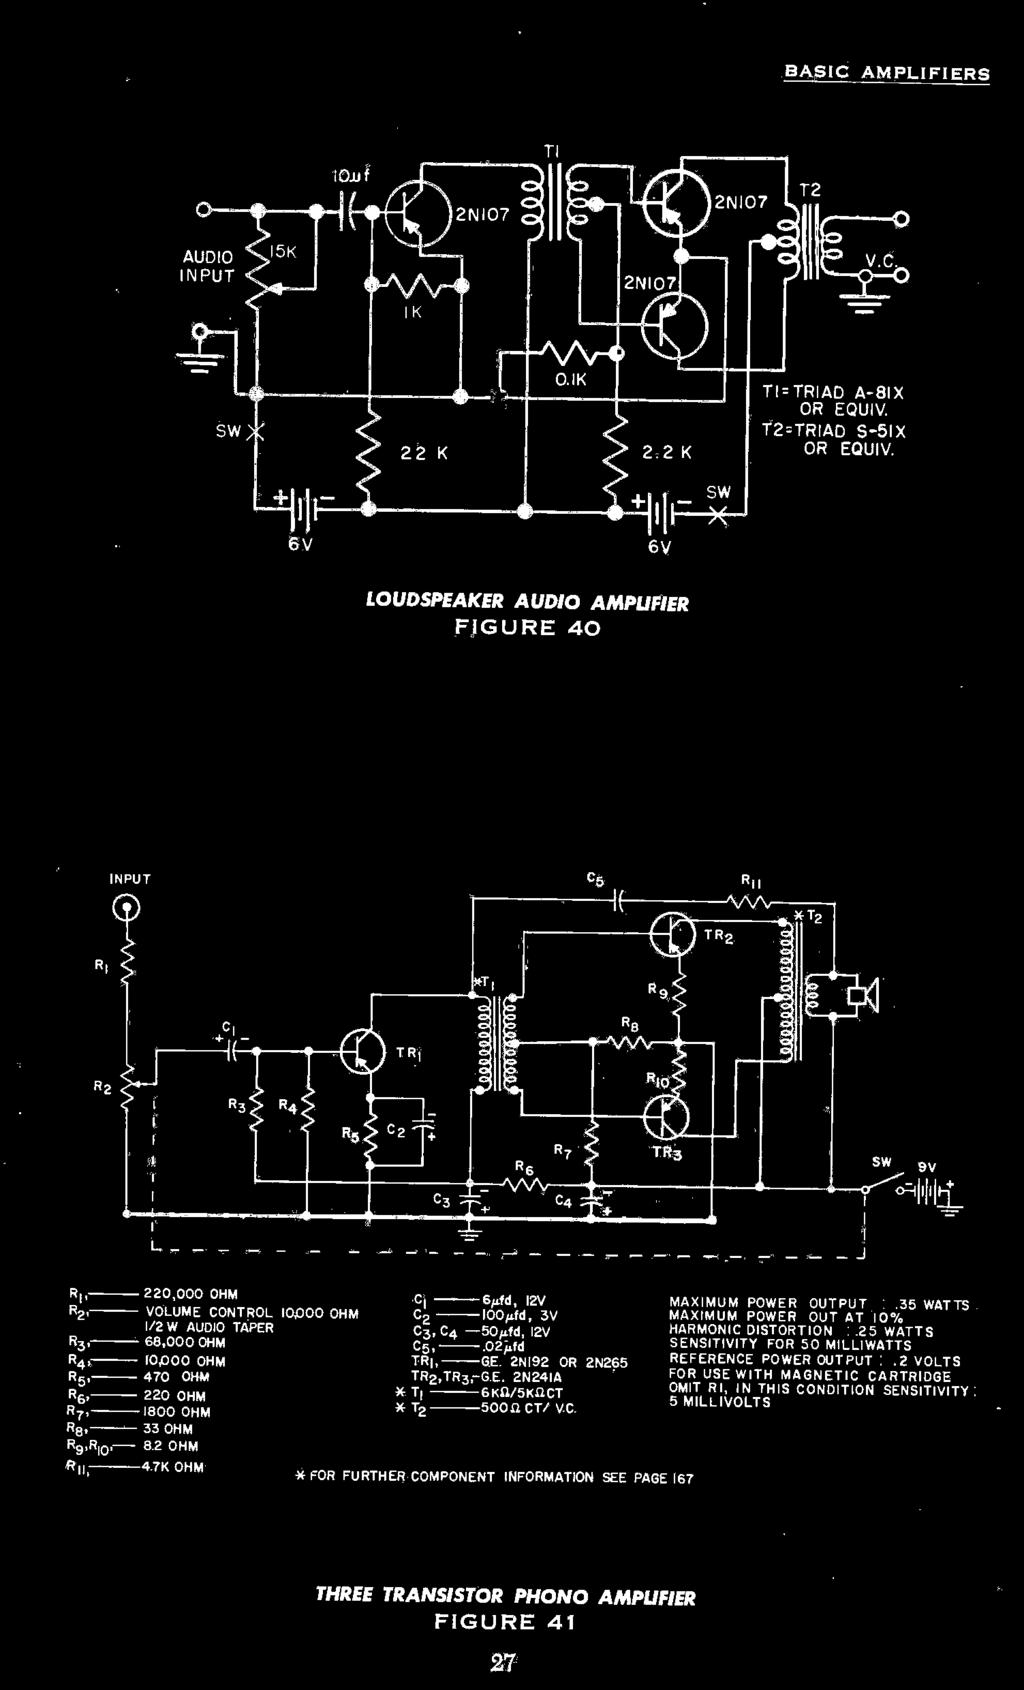 Contents Transistor Construction Techniques 8 Major Parameters 11 Rectifier Circuit For Tube Amp Tubeamplifier Audiocircuit 35 Watts R2 Volume Control 10000 Ohm 02 10004 3v Maximum Power Out At